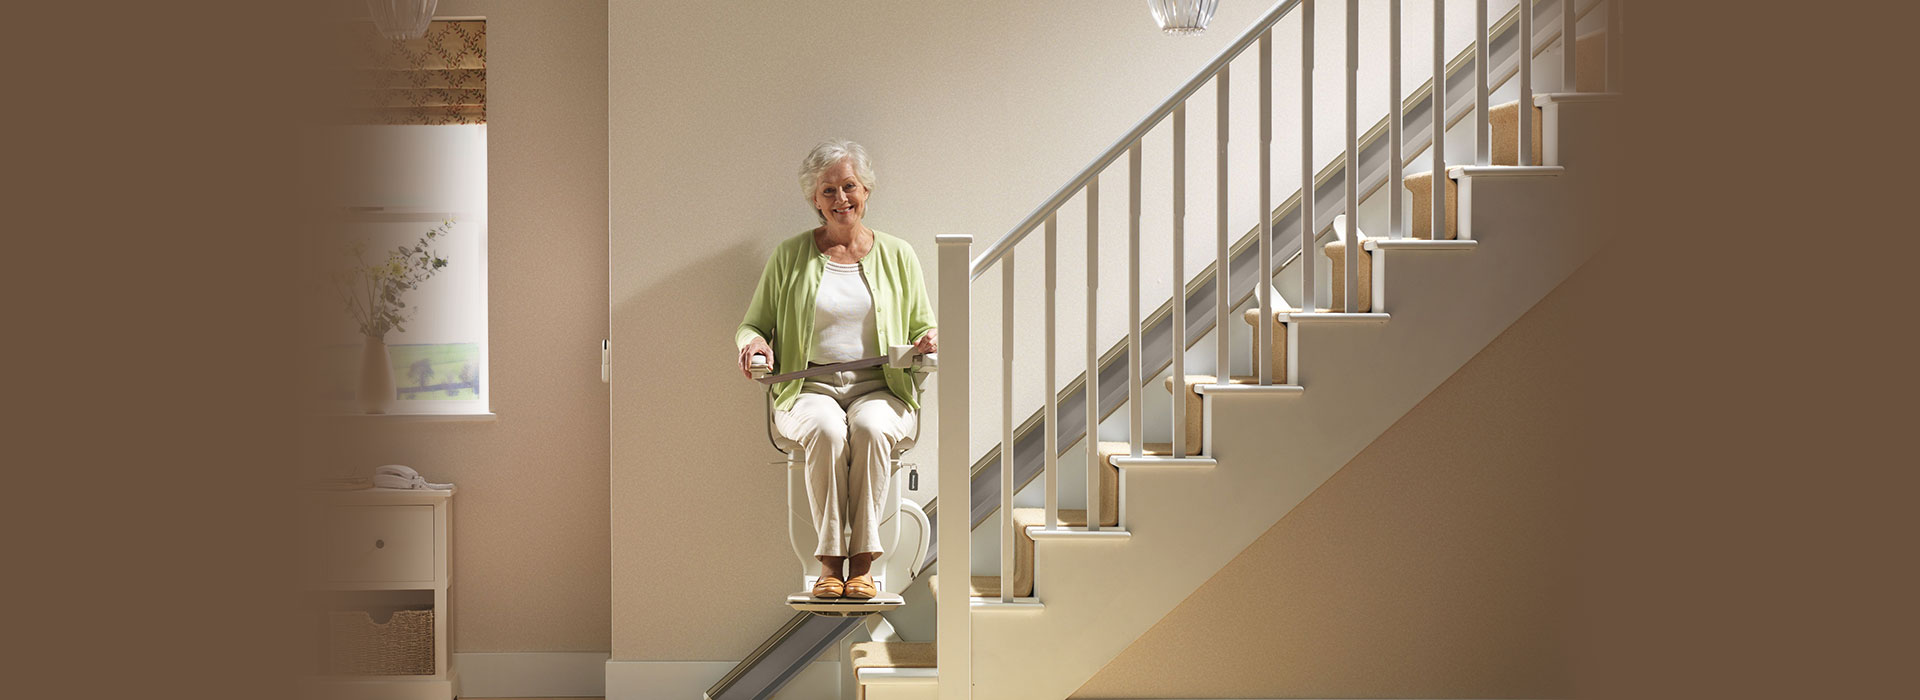 Stair Chair Lift Prices Stannah Stairlifts Chairlifts De Pa Nj